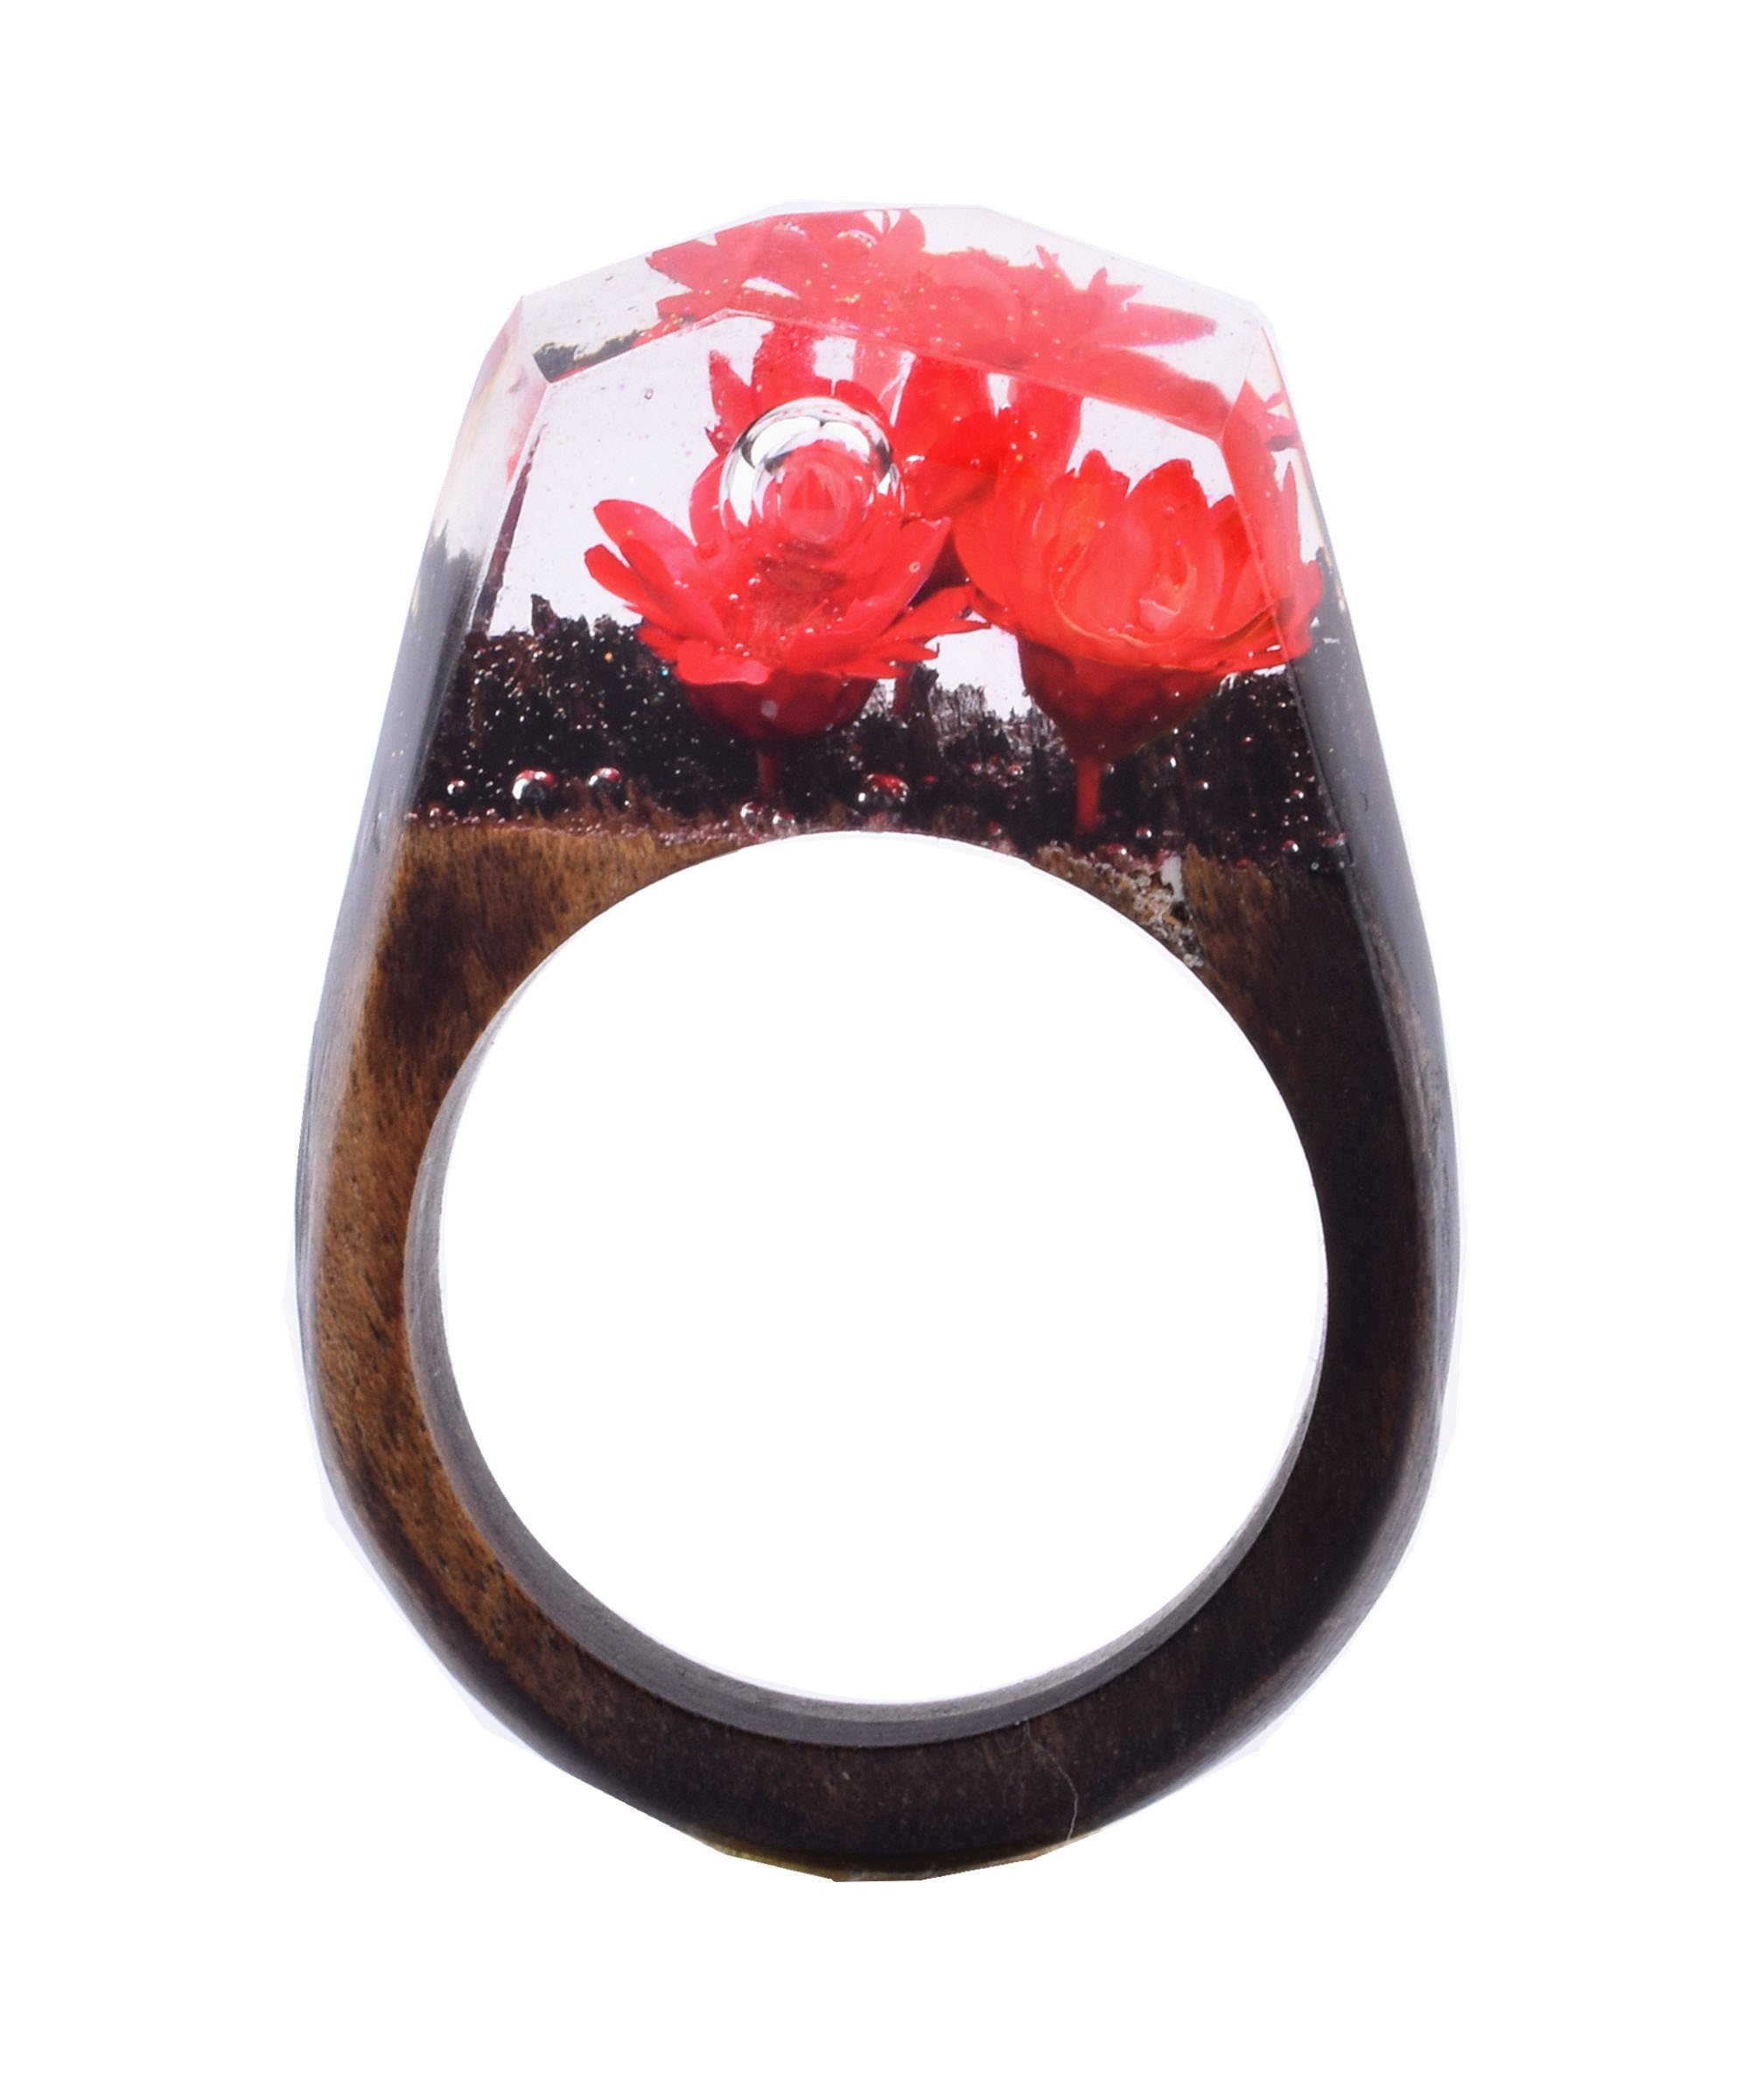 Heyou Love Handmade Wood Resin Ring With Red Flowers Micro Inside Rings Jewelry